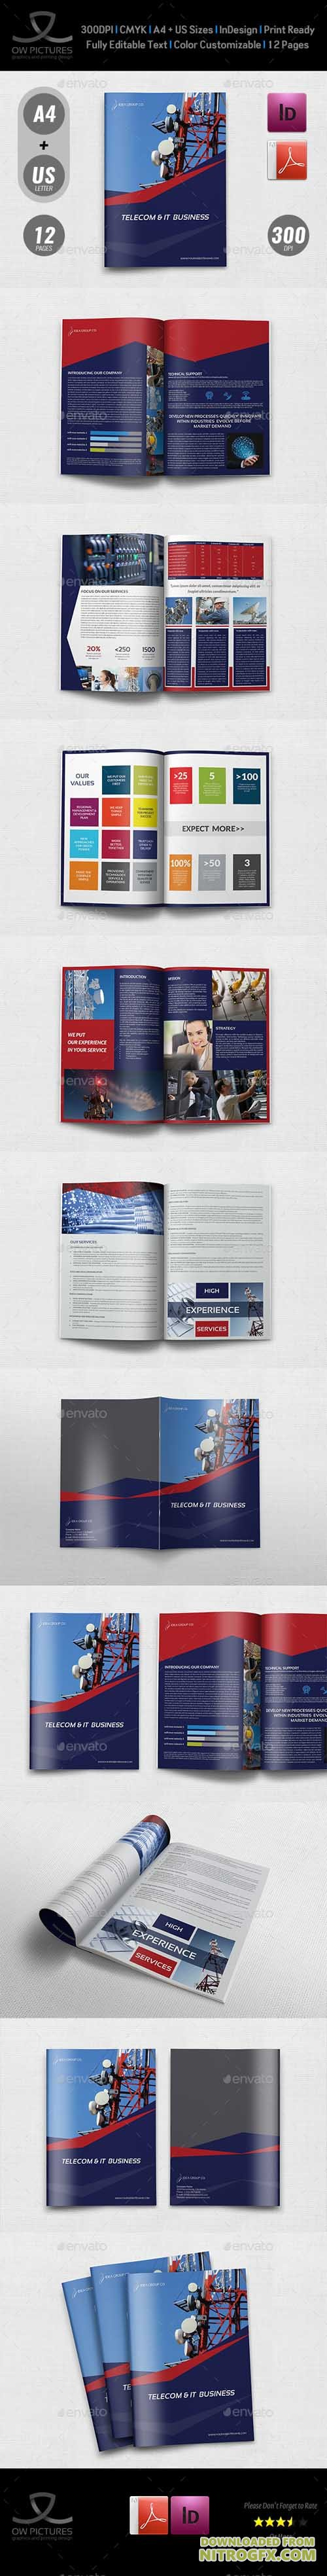 GraphicRiver - Telecom Services Brochure Template - 12 Pages 20657630